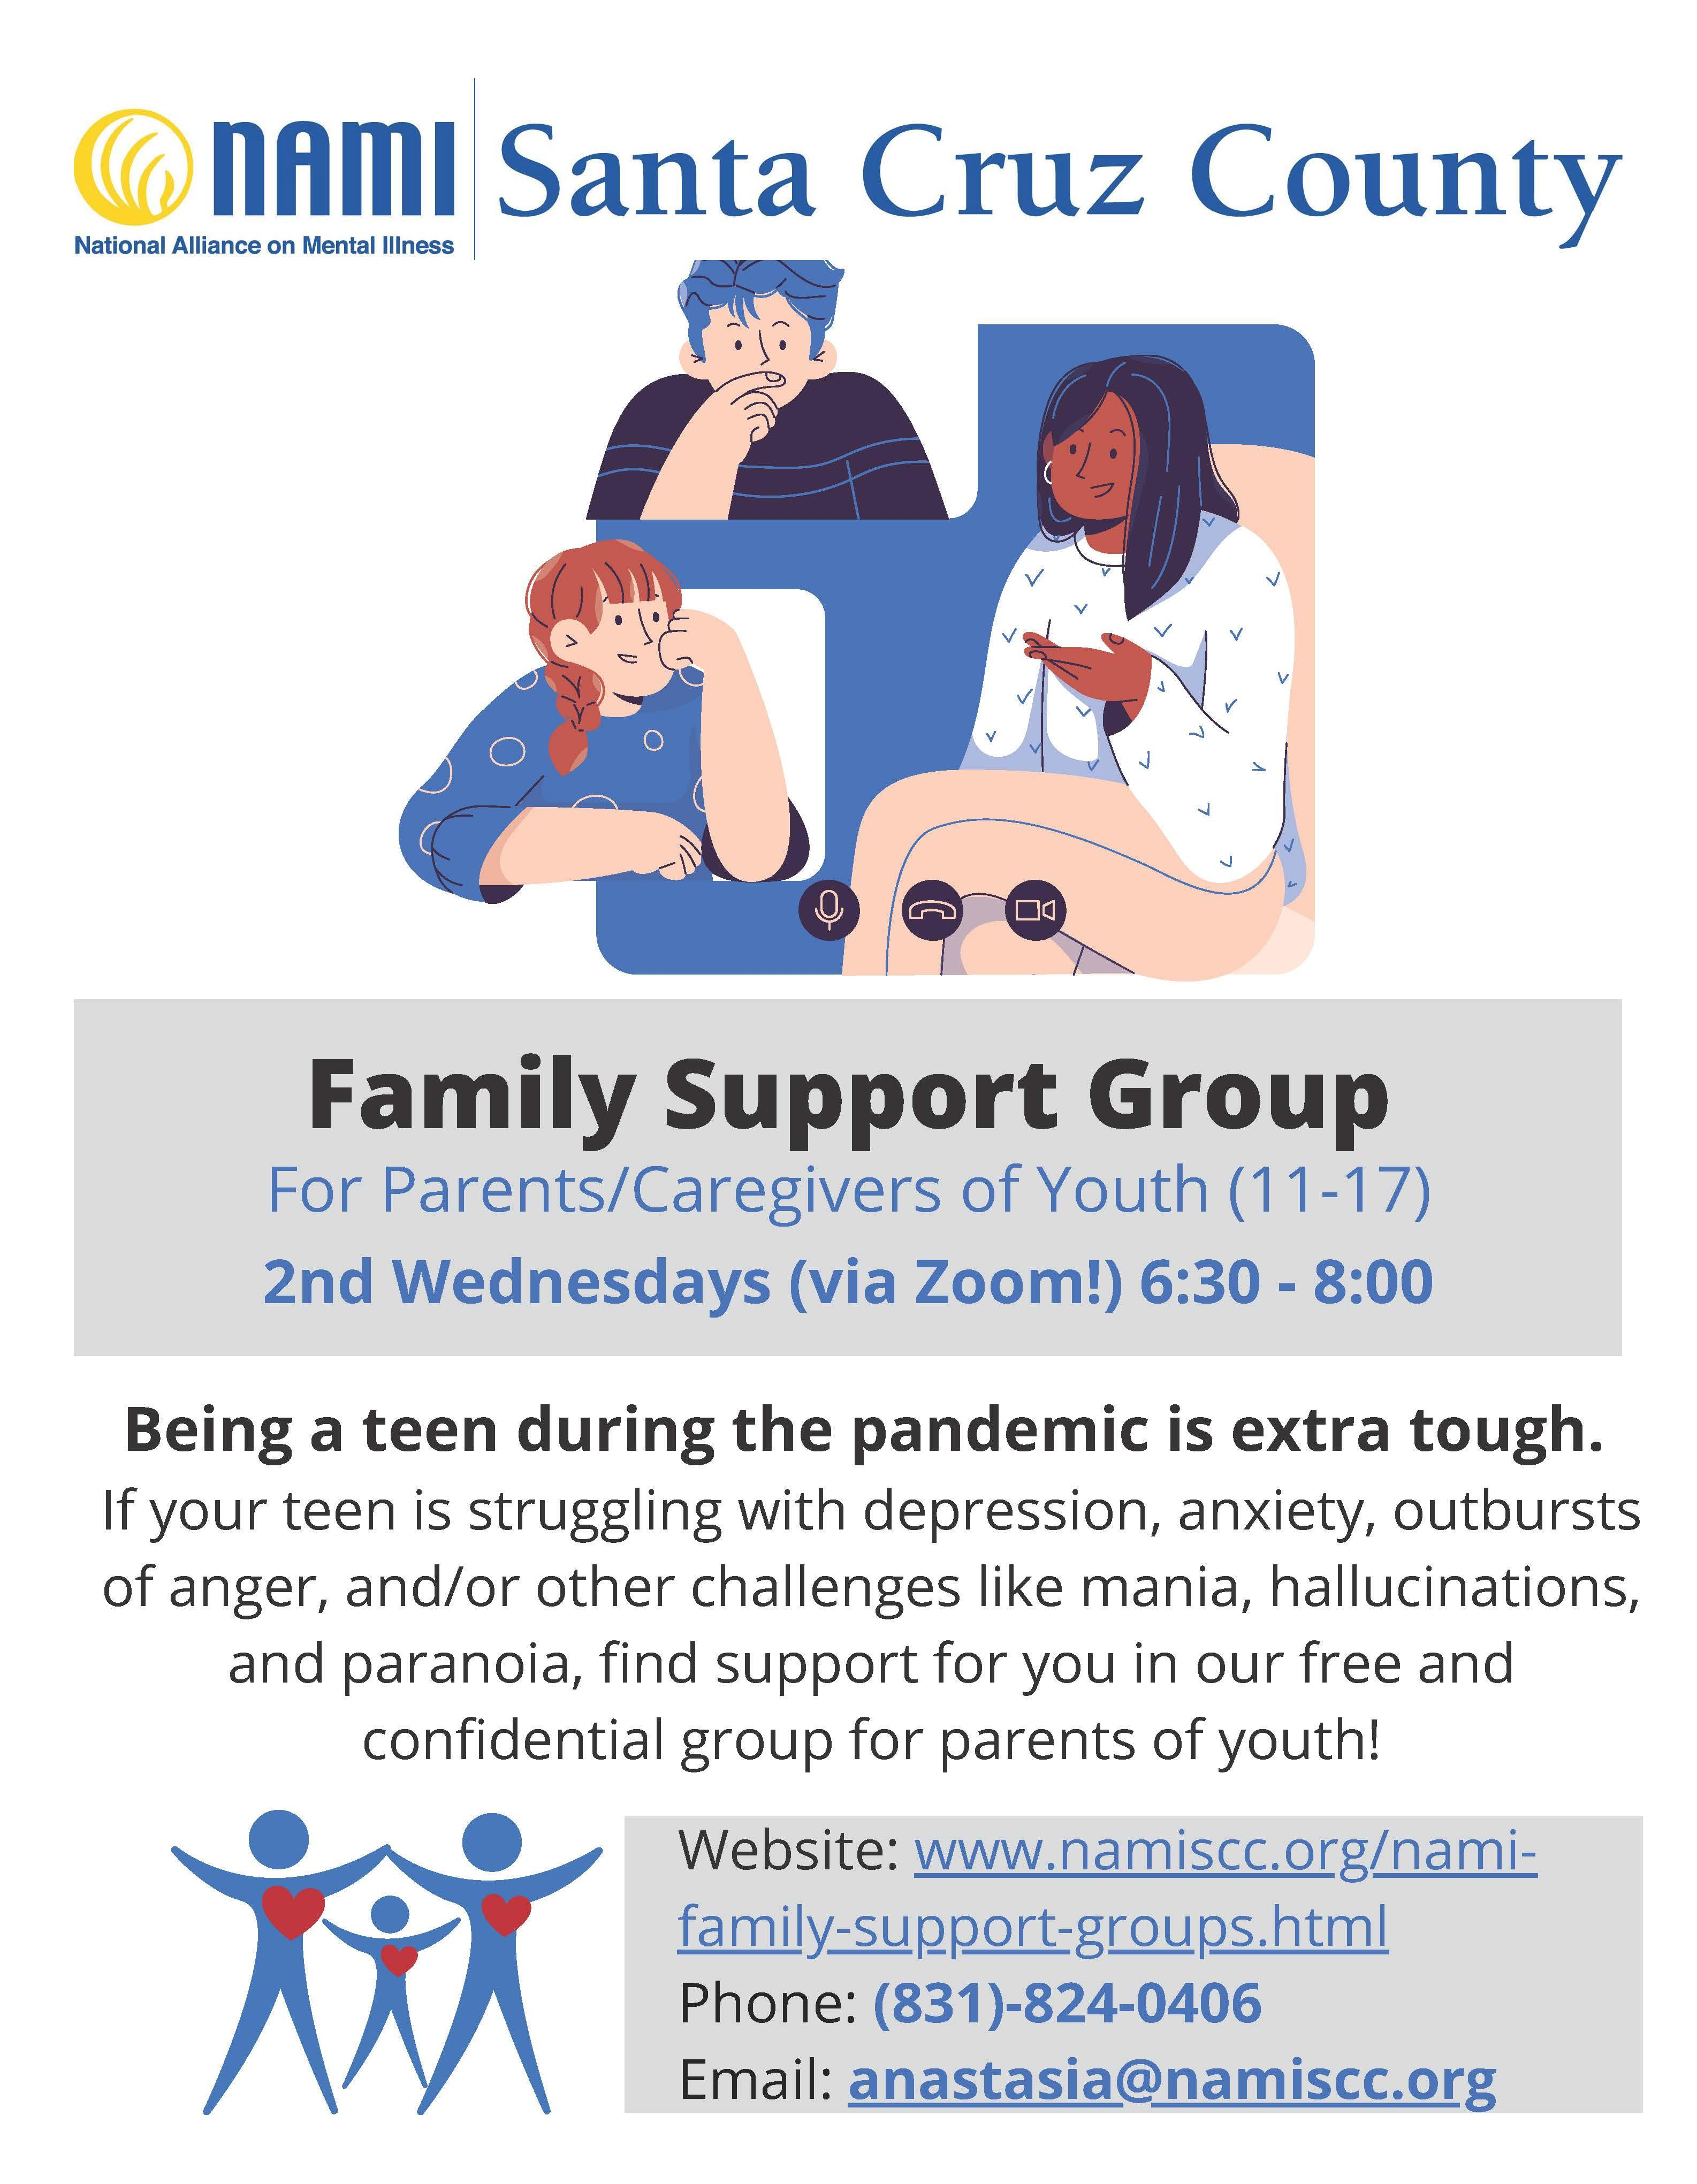 Family Support Group; Phone: (831)824-0406